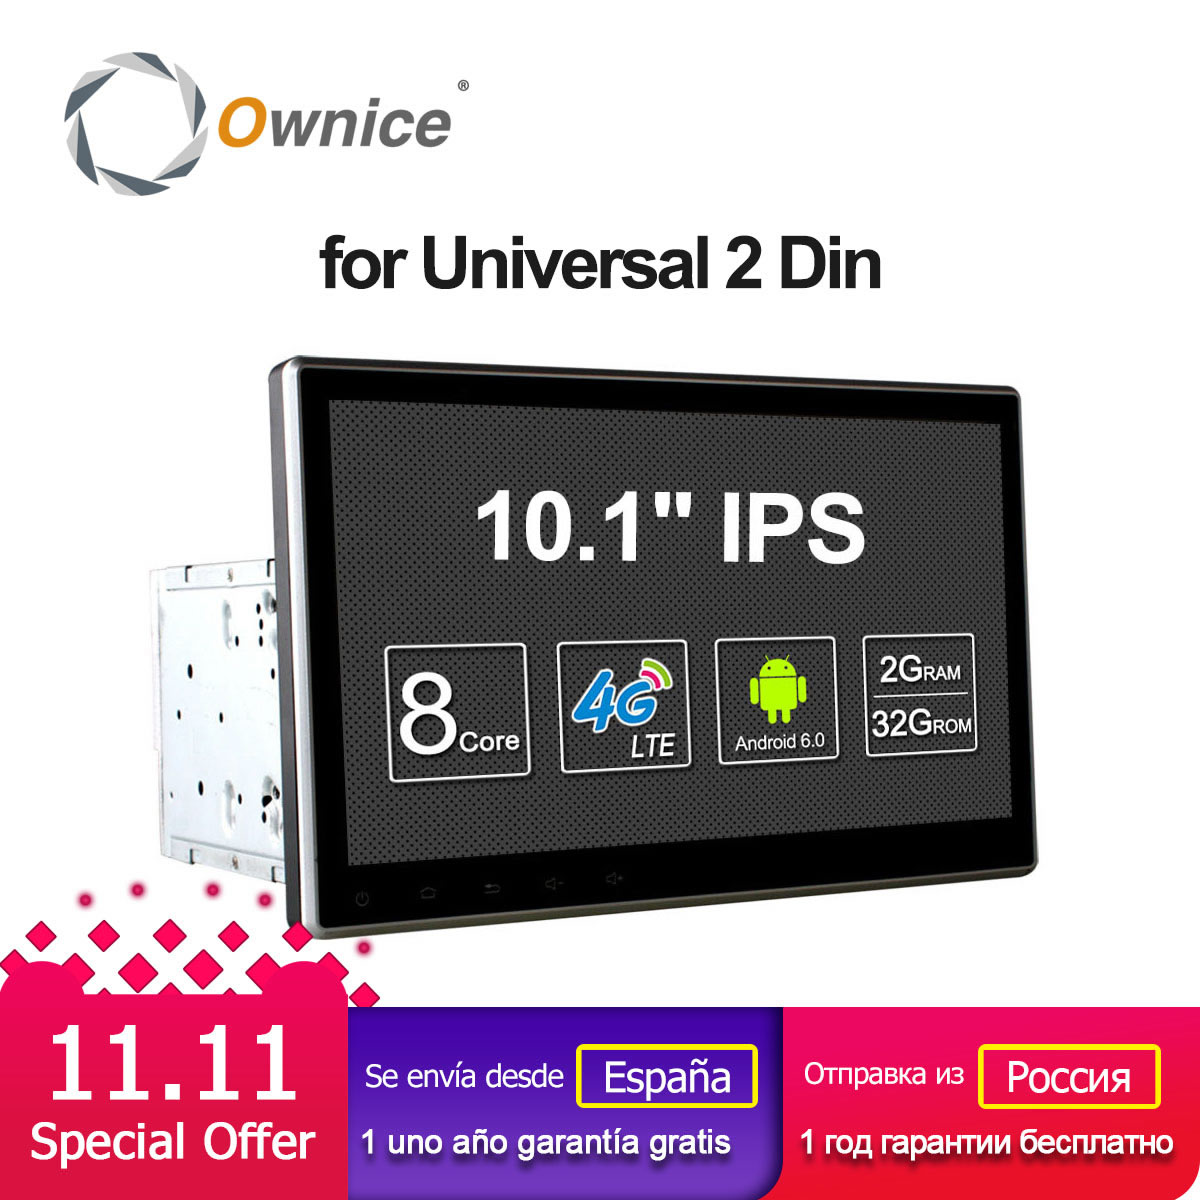 Ownice C500 2Din 10.1 inch HD android 6.0 octa core Universal car radio stereo DVD Player GPS Navigation TPMS DAB 4G LTE Carplay ownice c500 octa 8 core android 6 0 2g ram 32gb rom bt support 4g lte sim network car gps 2din universal car radio player stereo